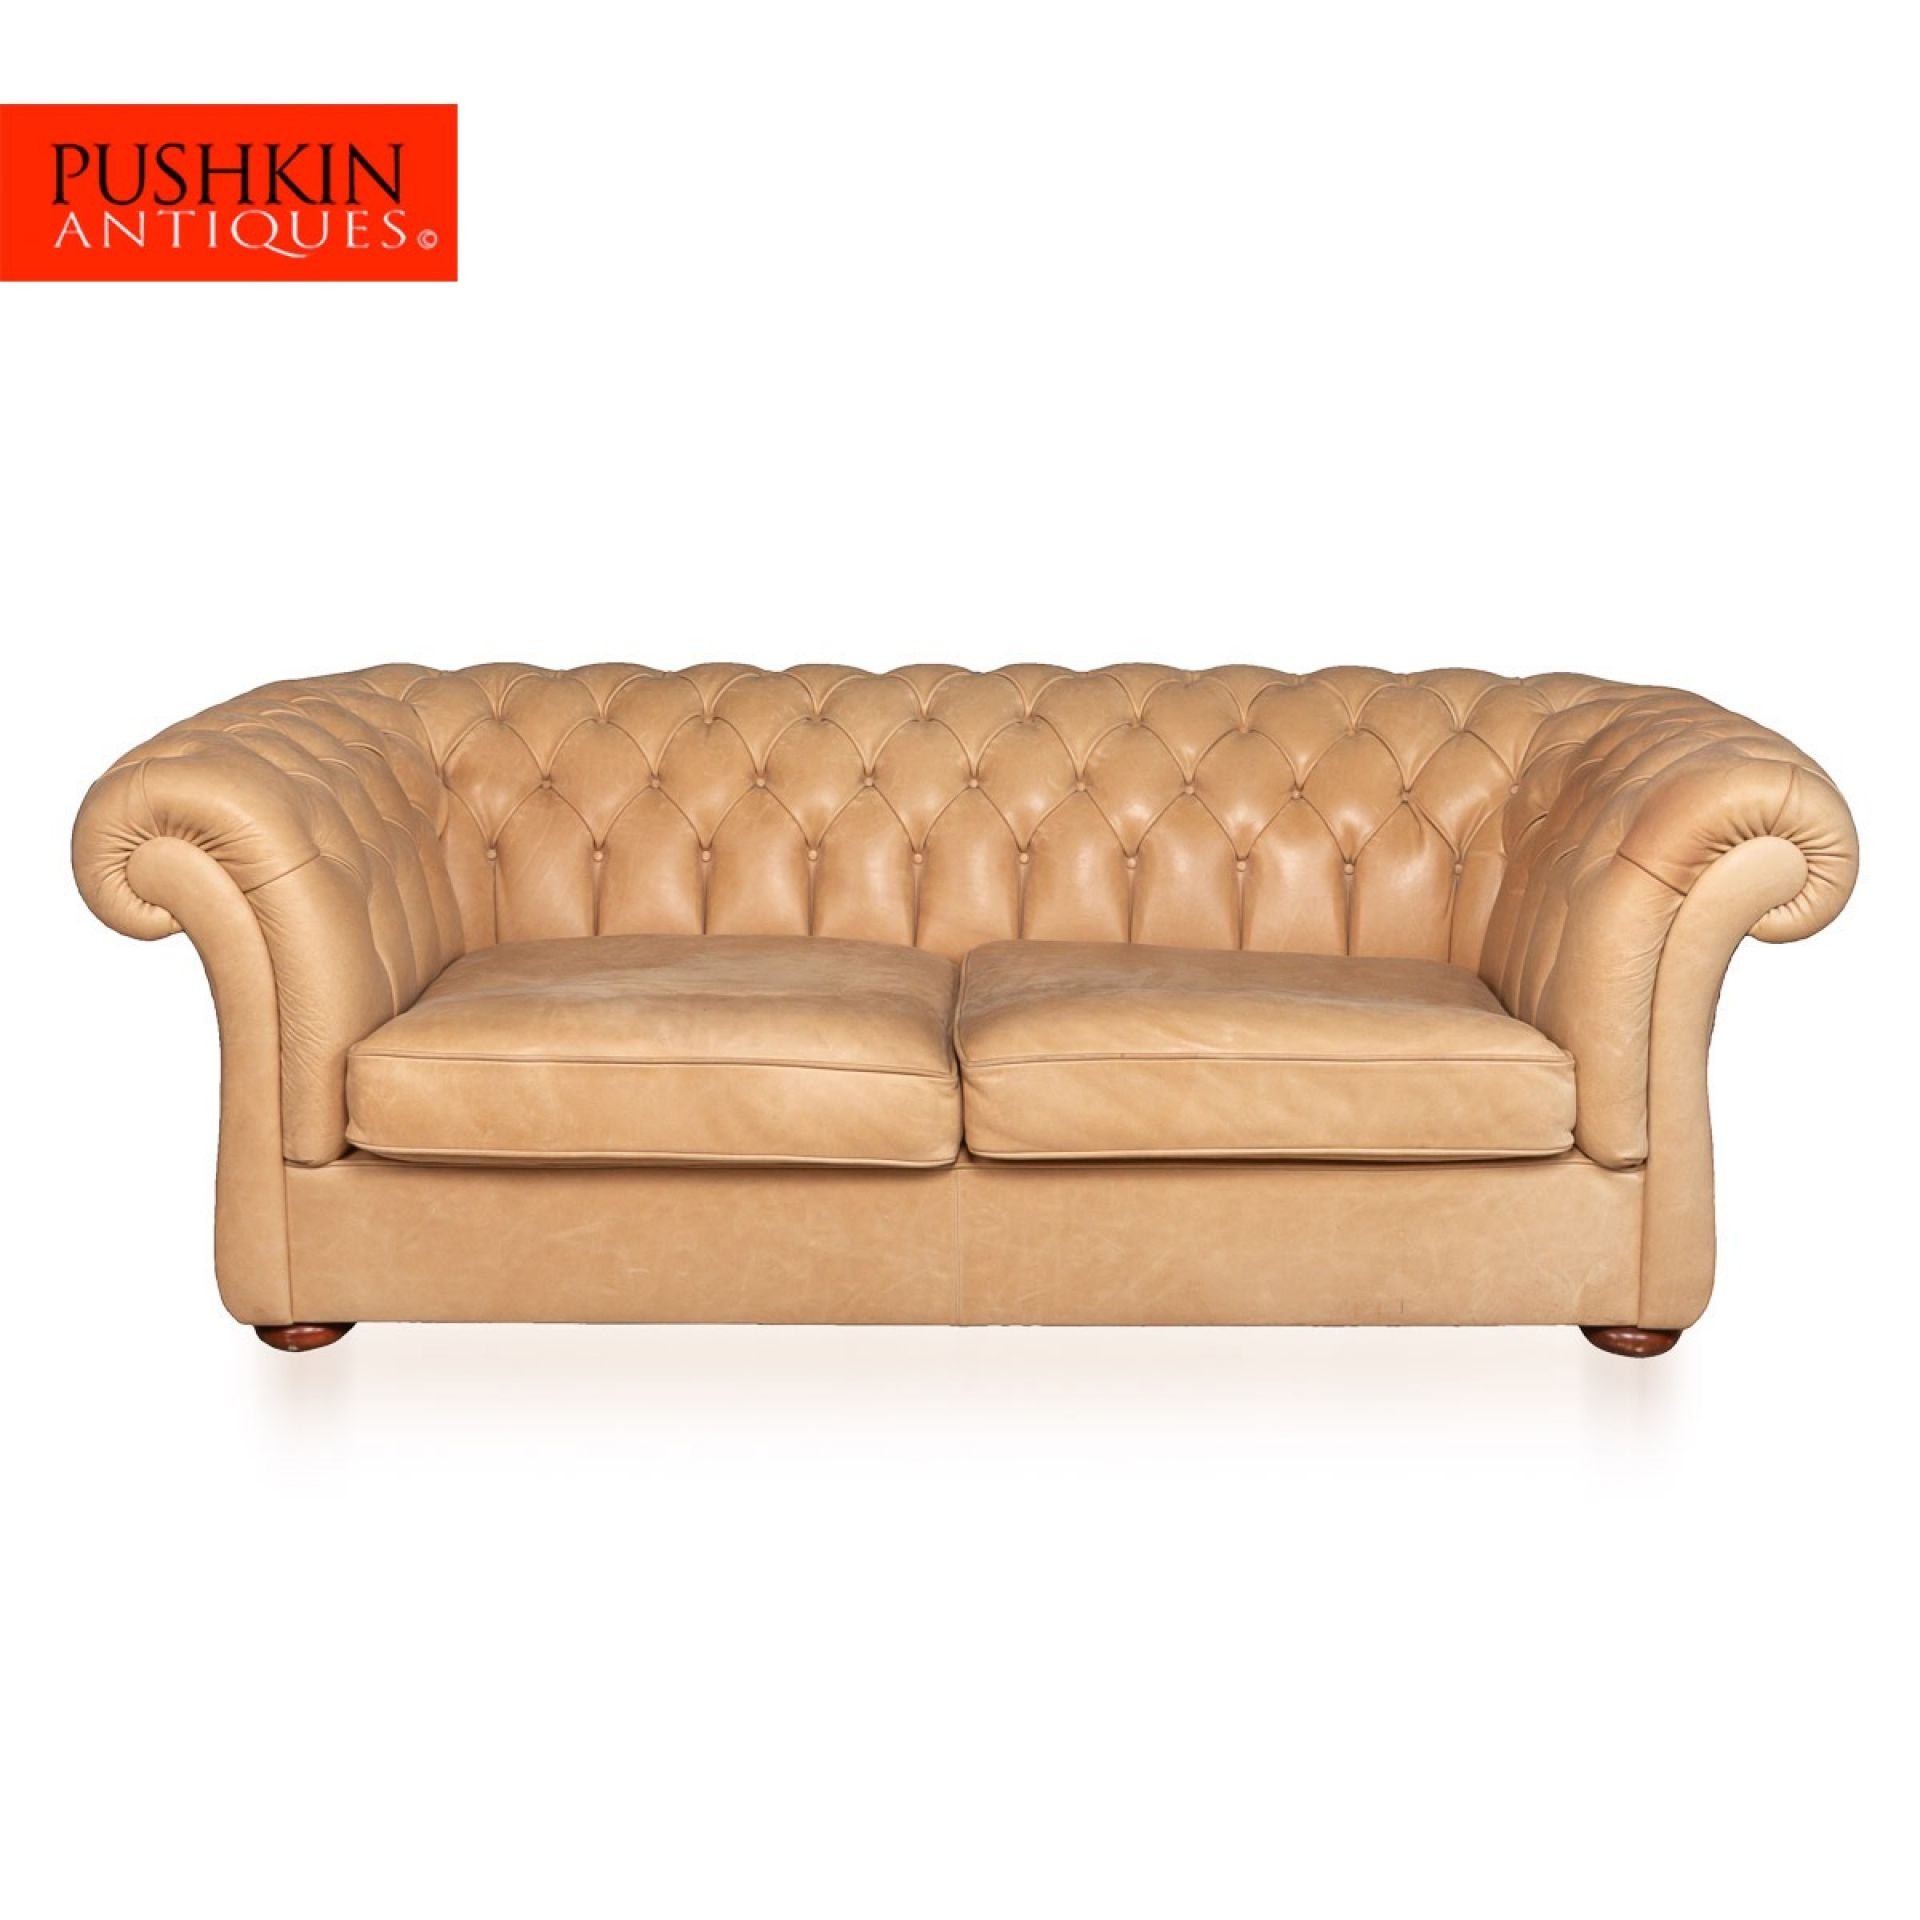 MODERN 21stC HANDMADE CHESTERFIELD SOFA IN WHITE LEATHER